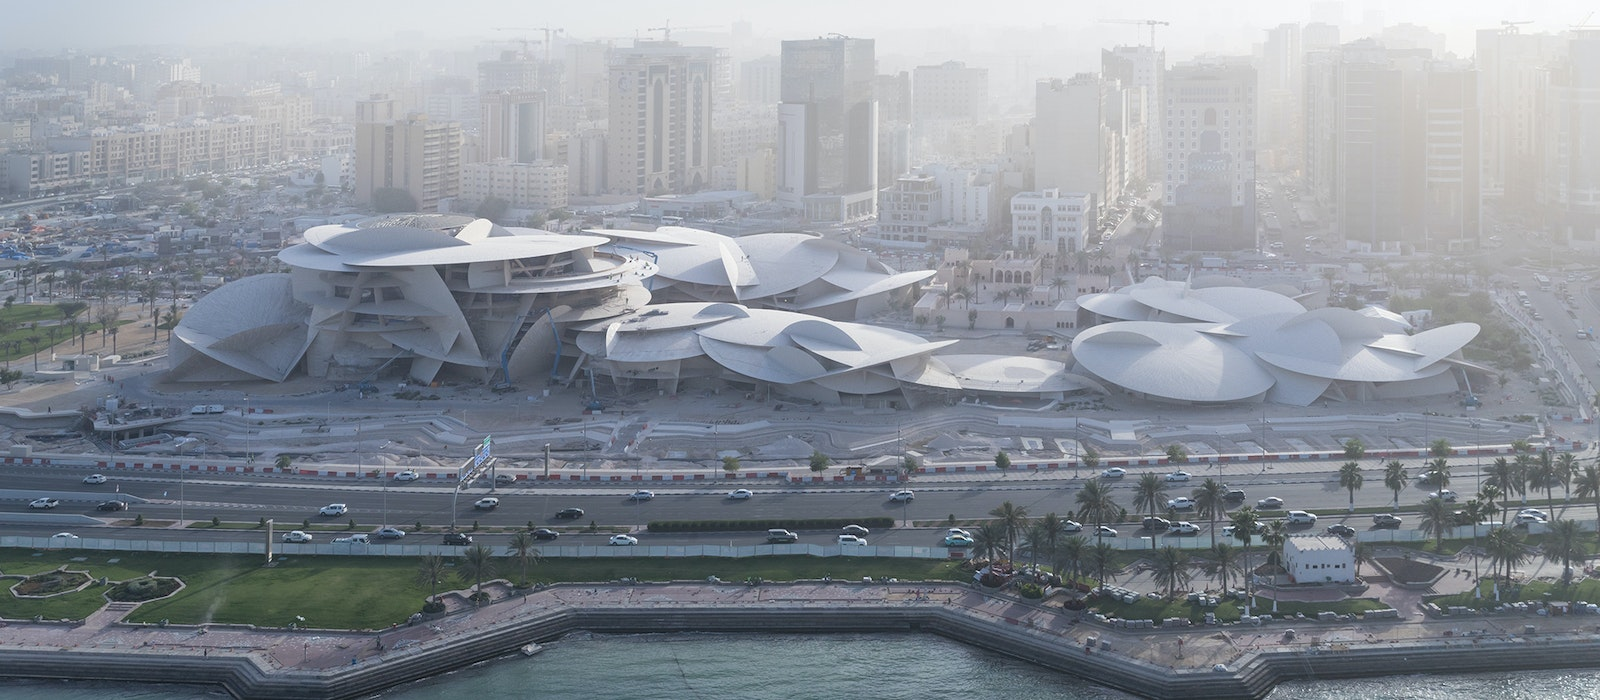 An aerial view of the National Museum of Qatar designed by Ateliers Jean Nouvel